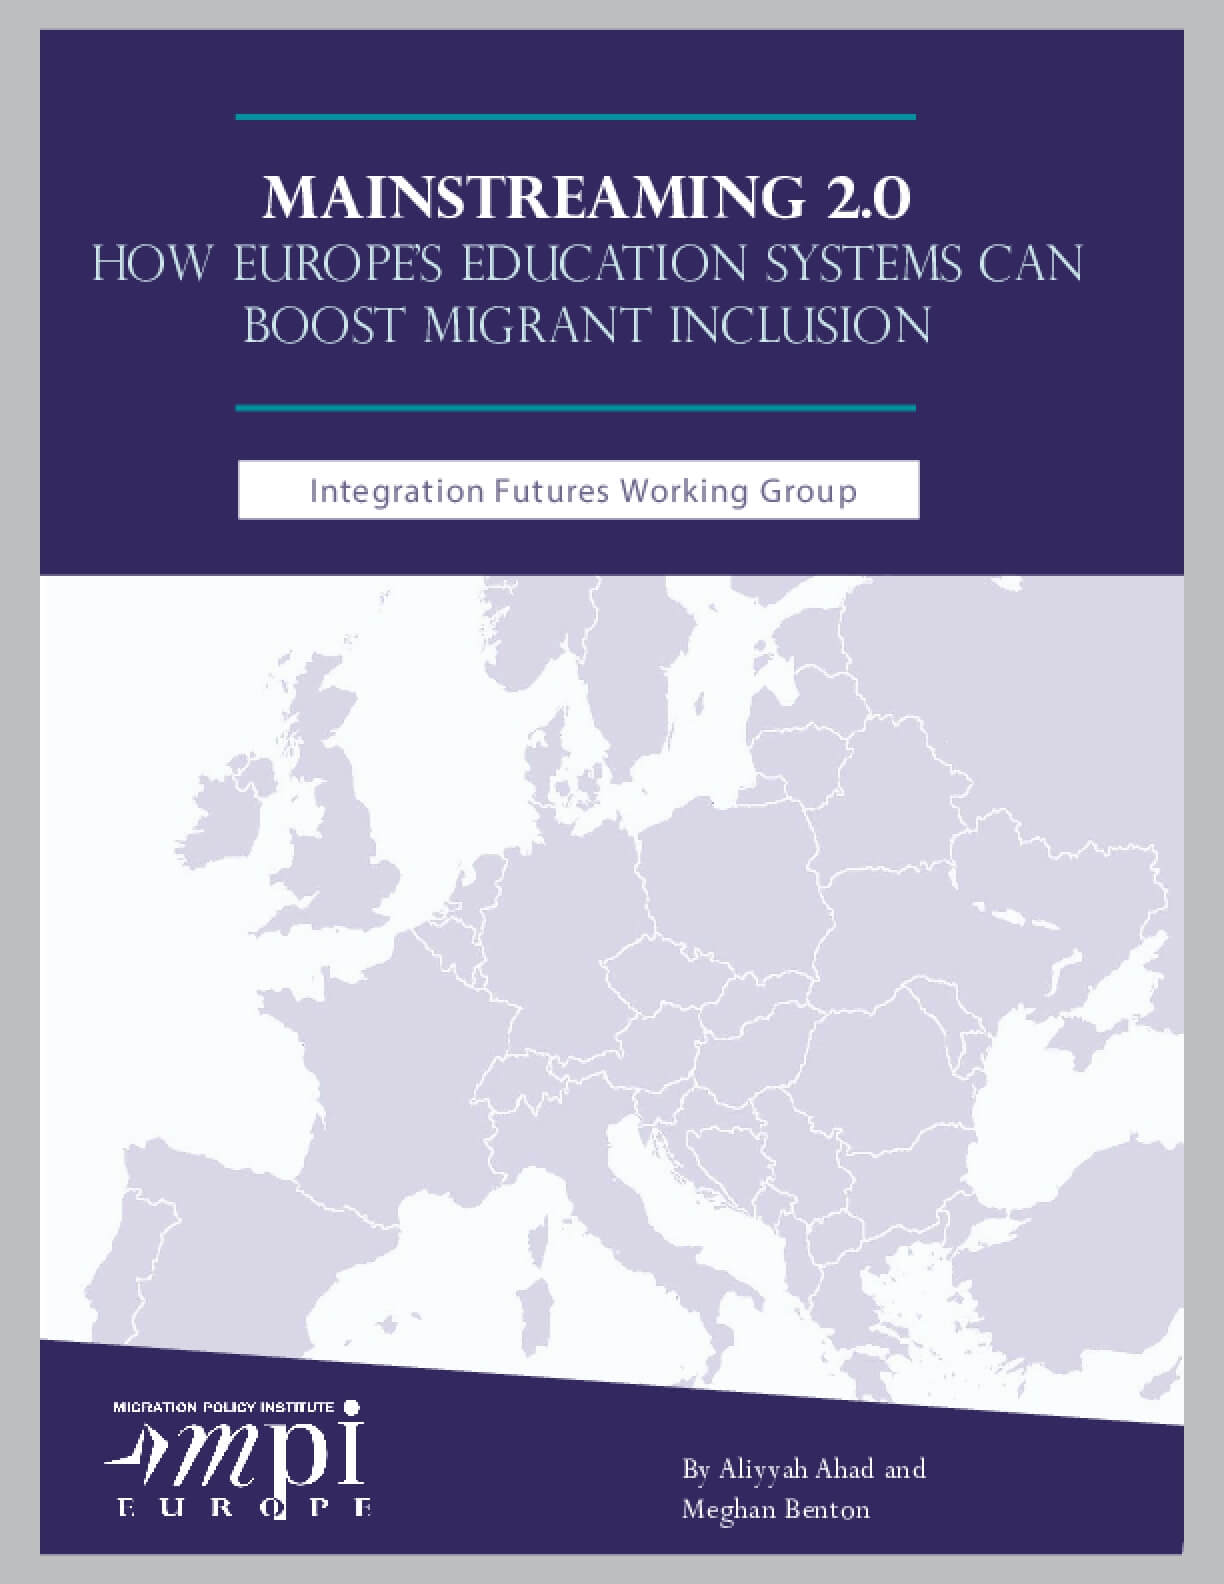 Mainstreaming 2.0: How Europe's Education Systems Can Boost Migrant Inclusion